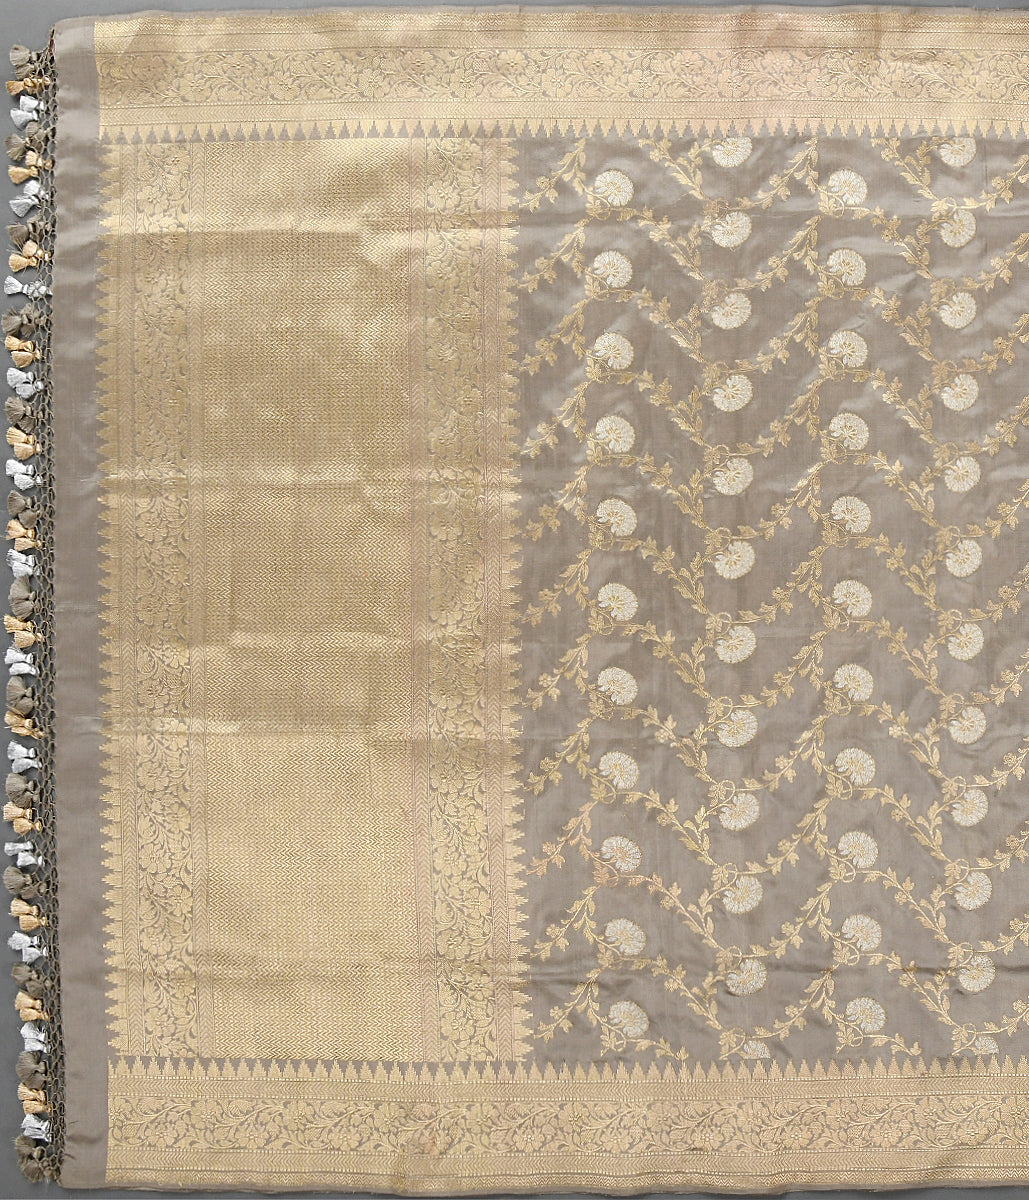 Handwoven Light Grey Kadhwa Jangla Dupatta